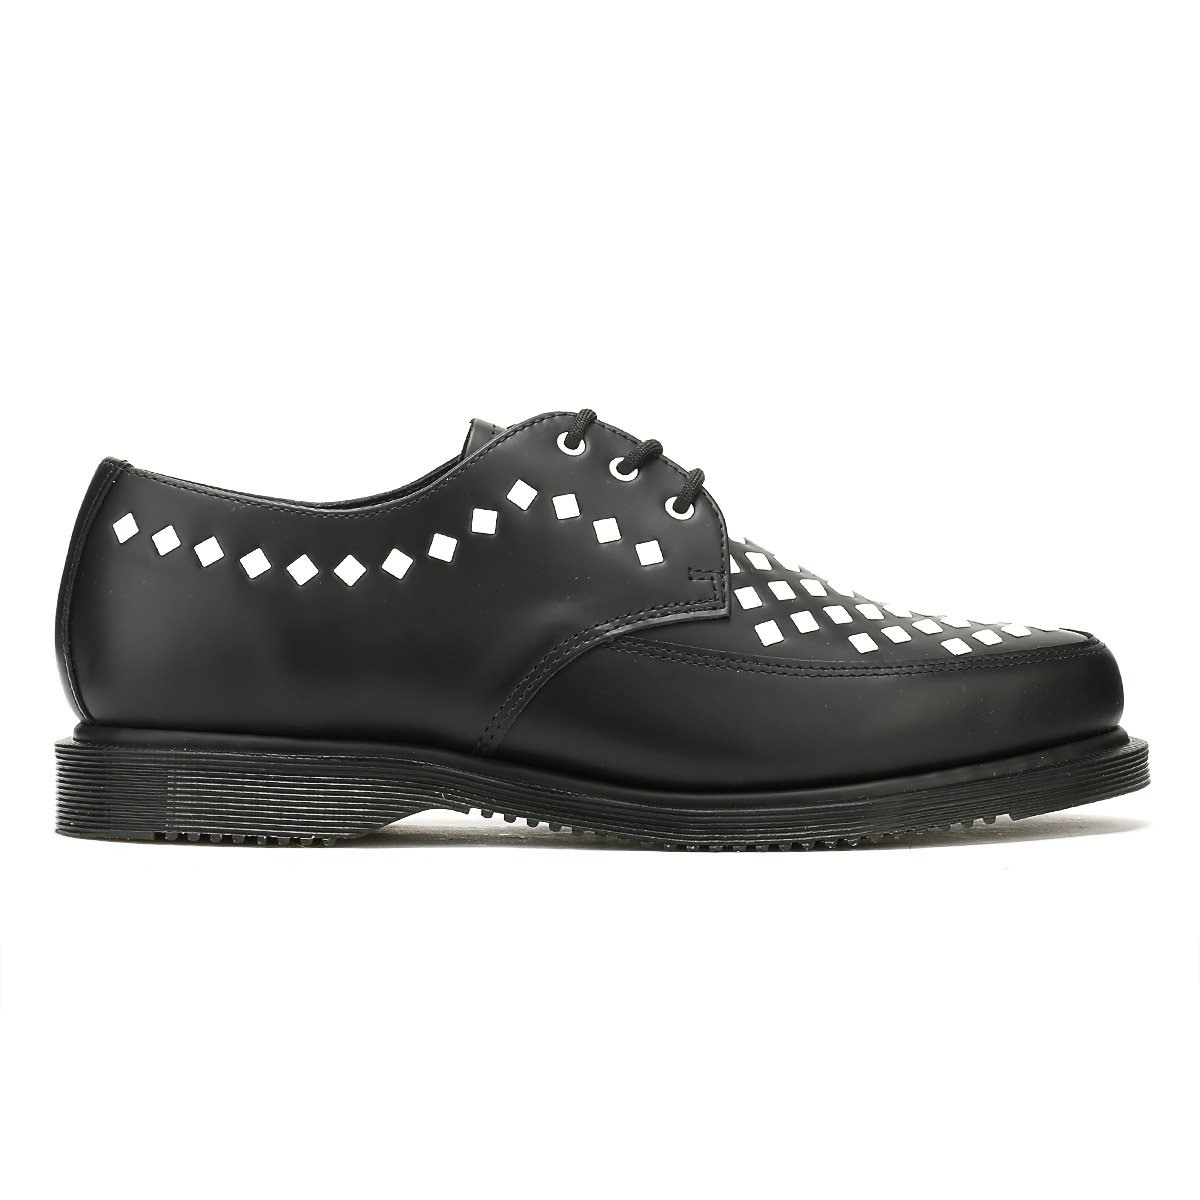 Dr. Martens B071GFR5VZ Unisex Willis Stud Creeper B071GFR5VZ Martens 5 M UK|Black Smooth 951016